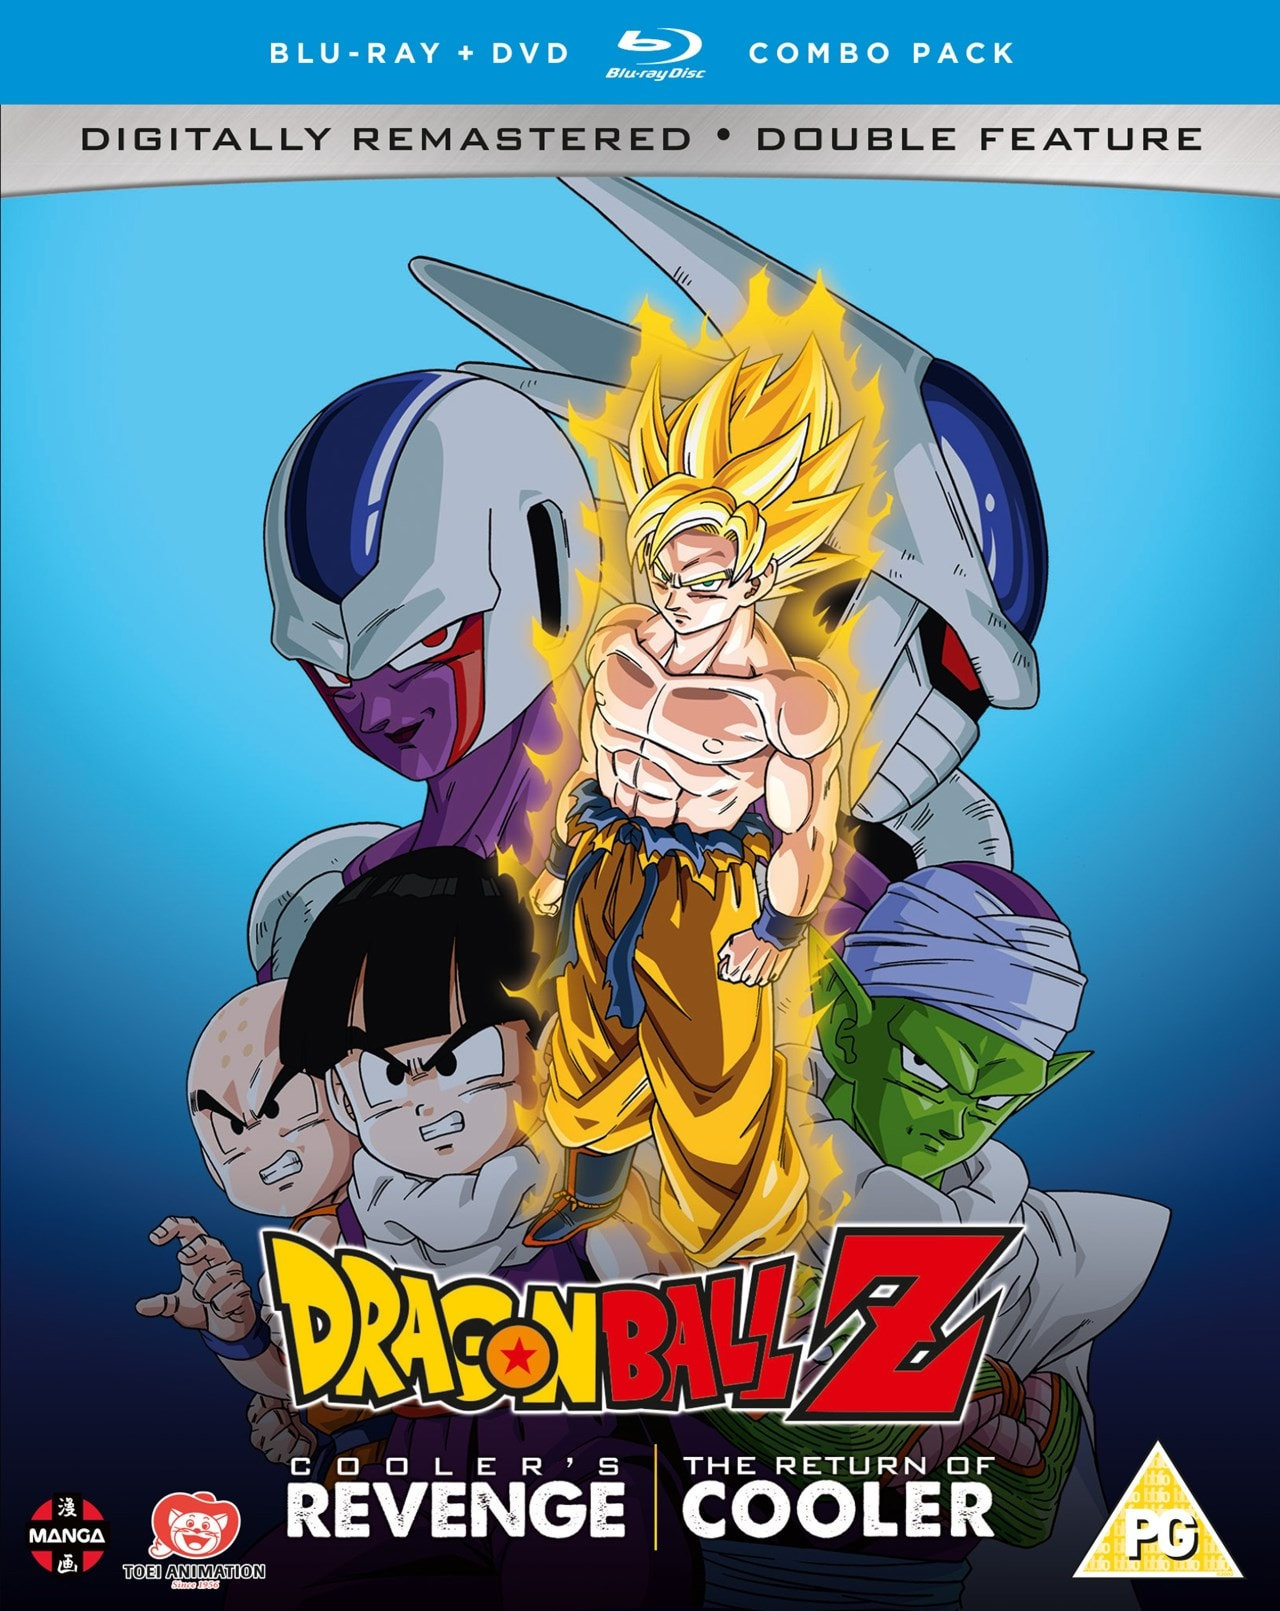 Dragonball Z: Cooler's Revenge/The Return of Cooler - 1